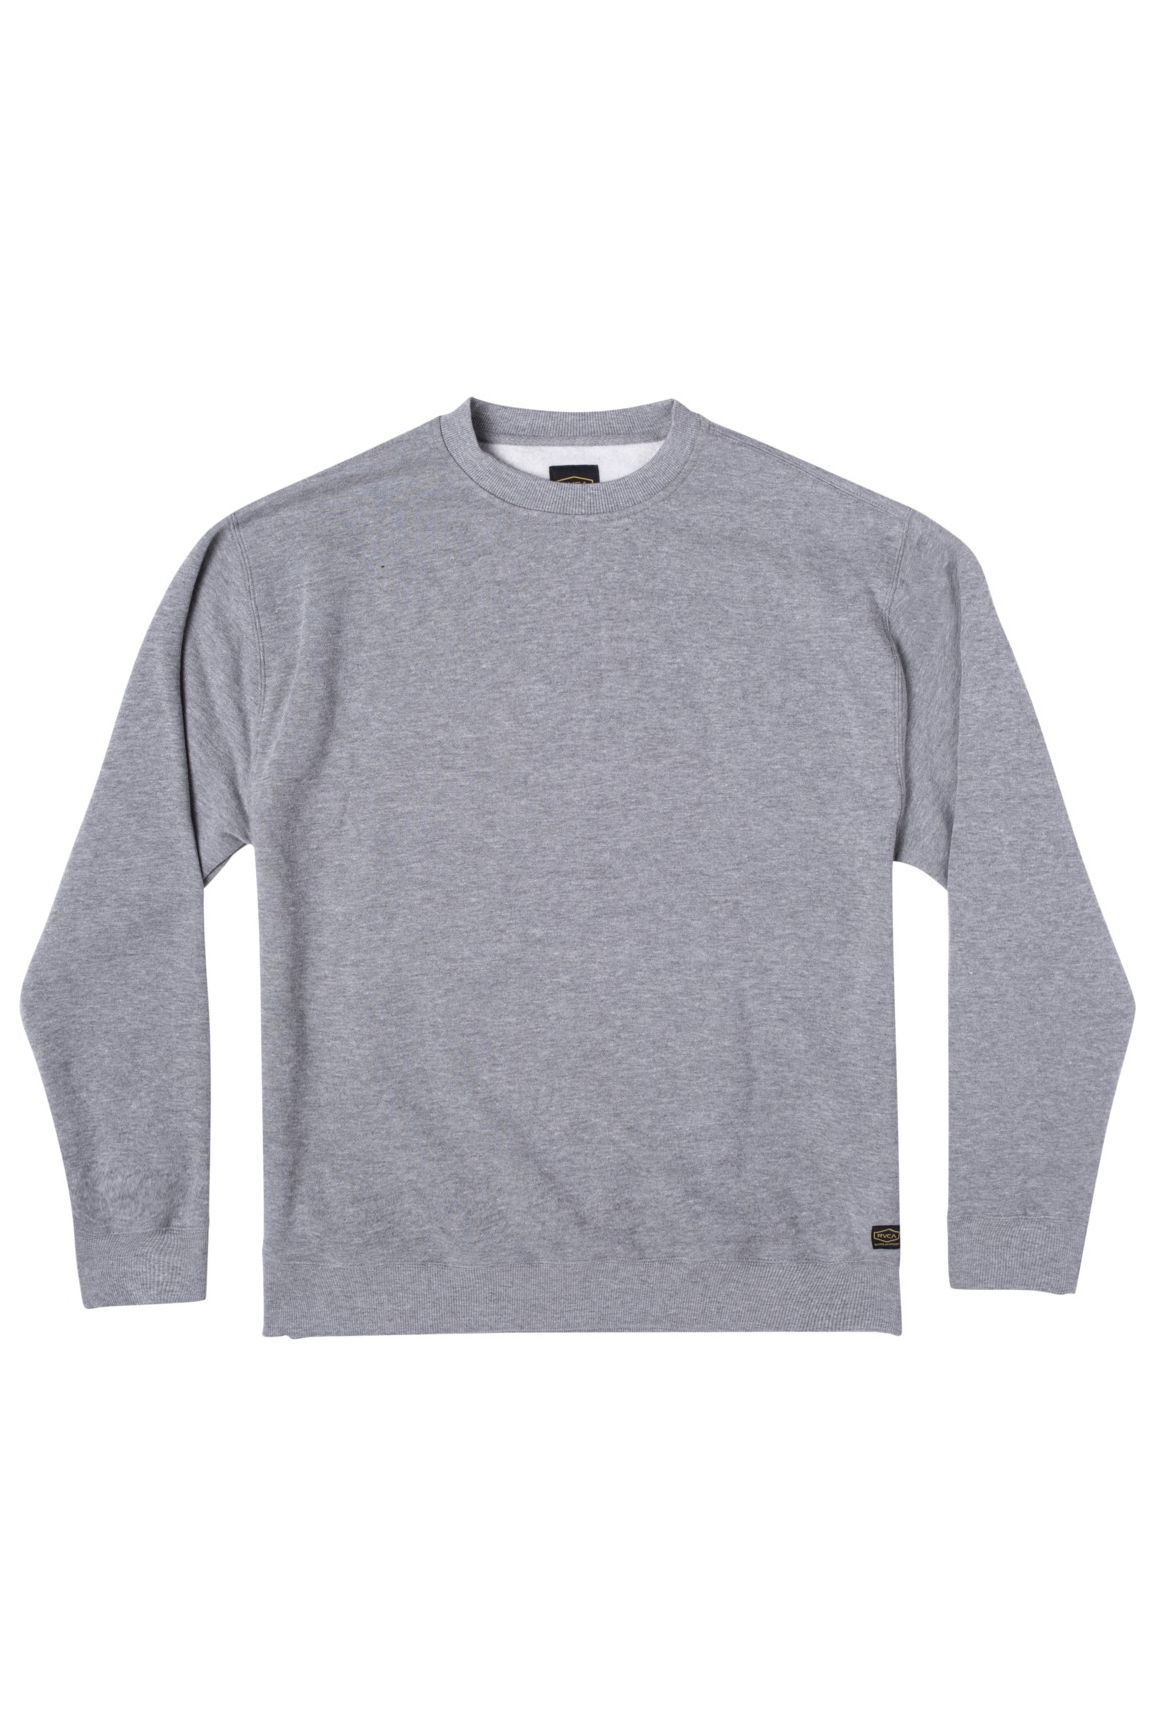 Sweat Basica RVCA DAY SHIFT RECESSION COLLECTION Athletic Heather